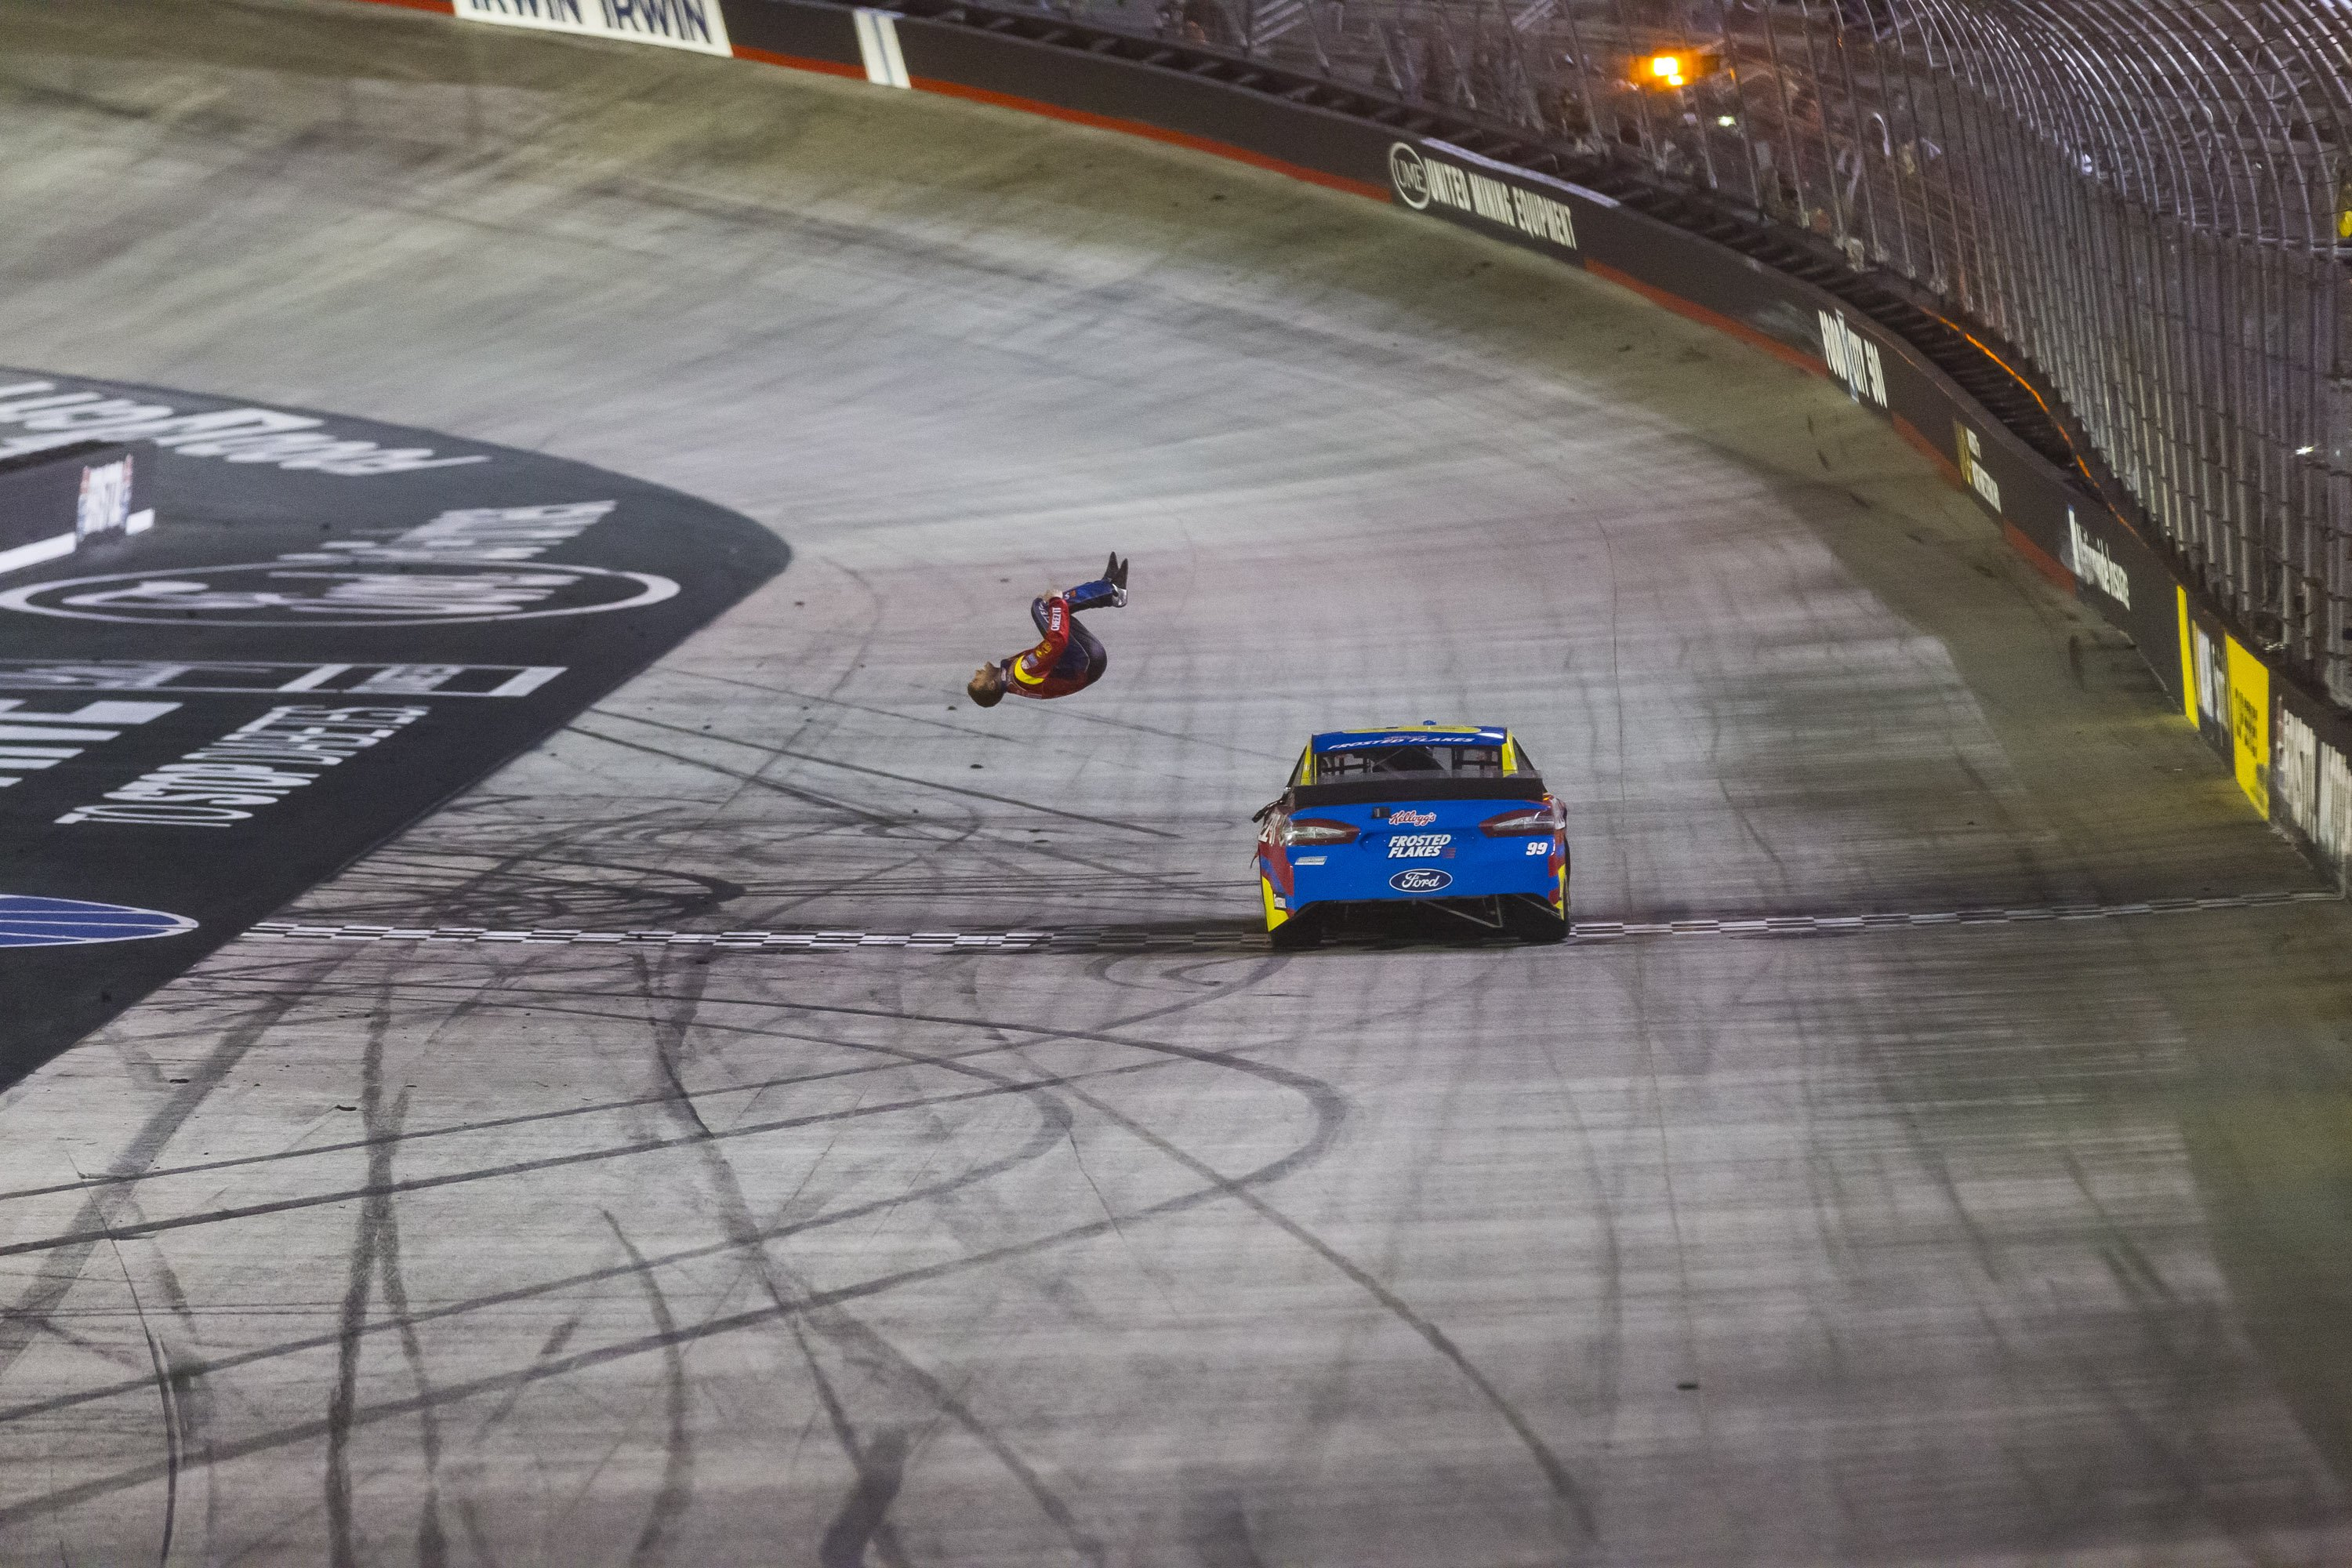 Driver Carl Edwards does a back flip off of the Roush Fenway Racing #99 Ford Fusion after winning the Sprint Cup series Food City 500 at Bristol Motor Speedway in Bristol, Tenn.